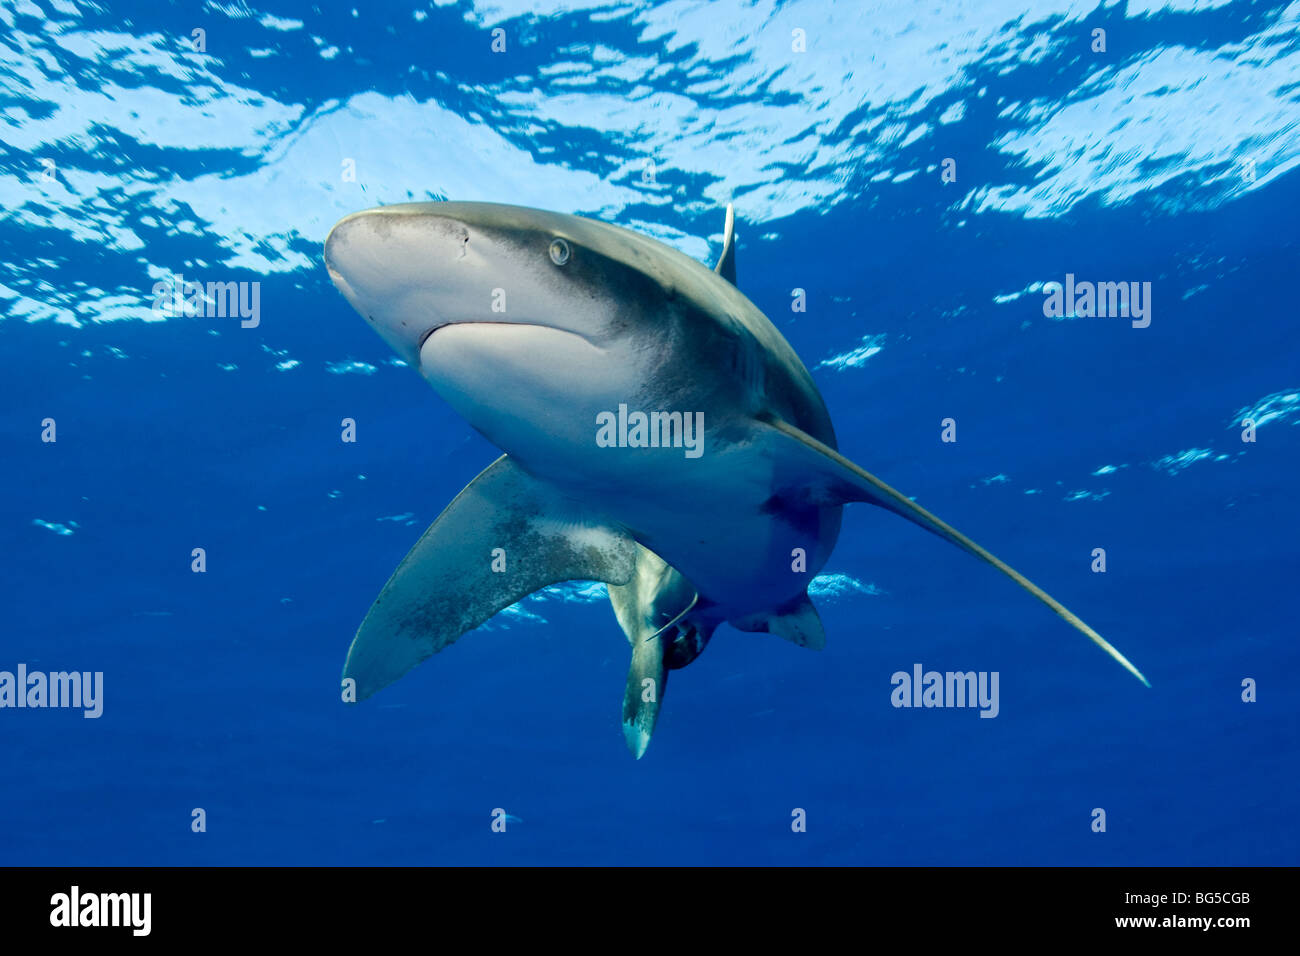 Oceanic white tip shark in the Red Sea, blue water, underwater, Egypt, predator, fins, hunting, shallow water, stunning, - Stock Image